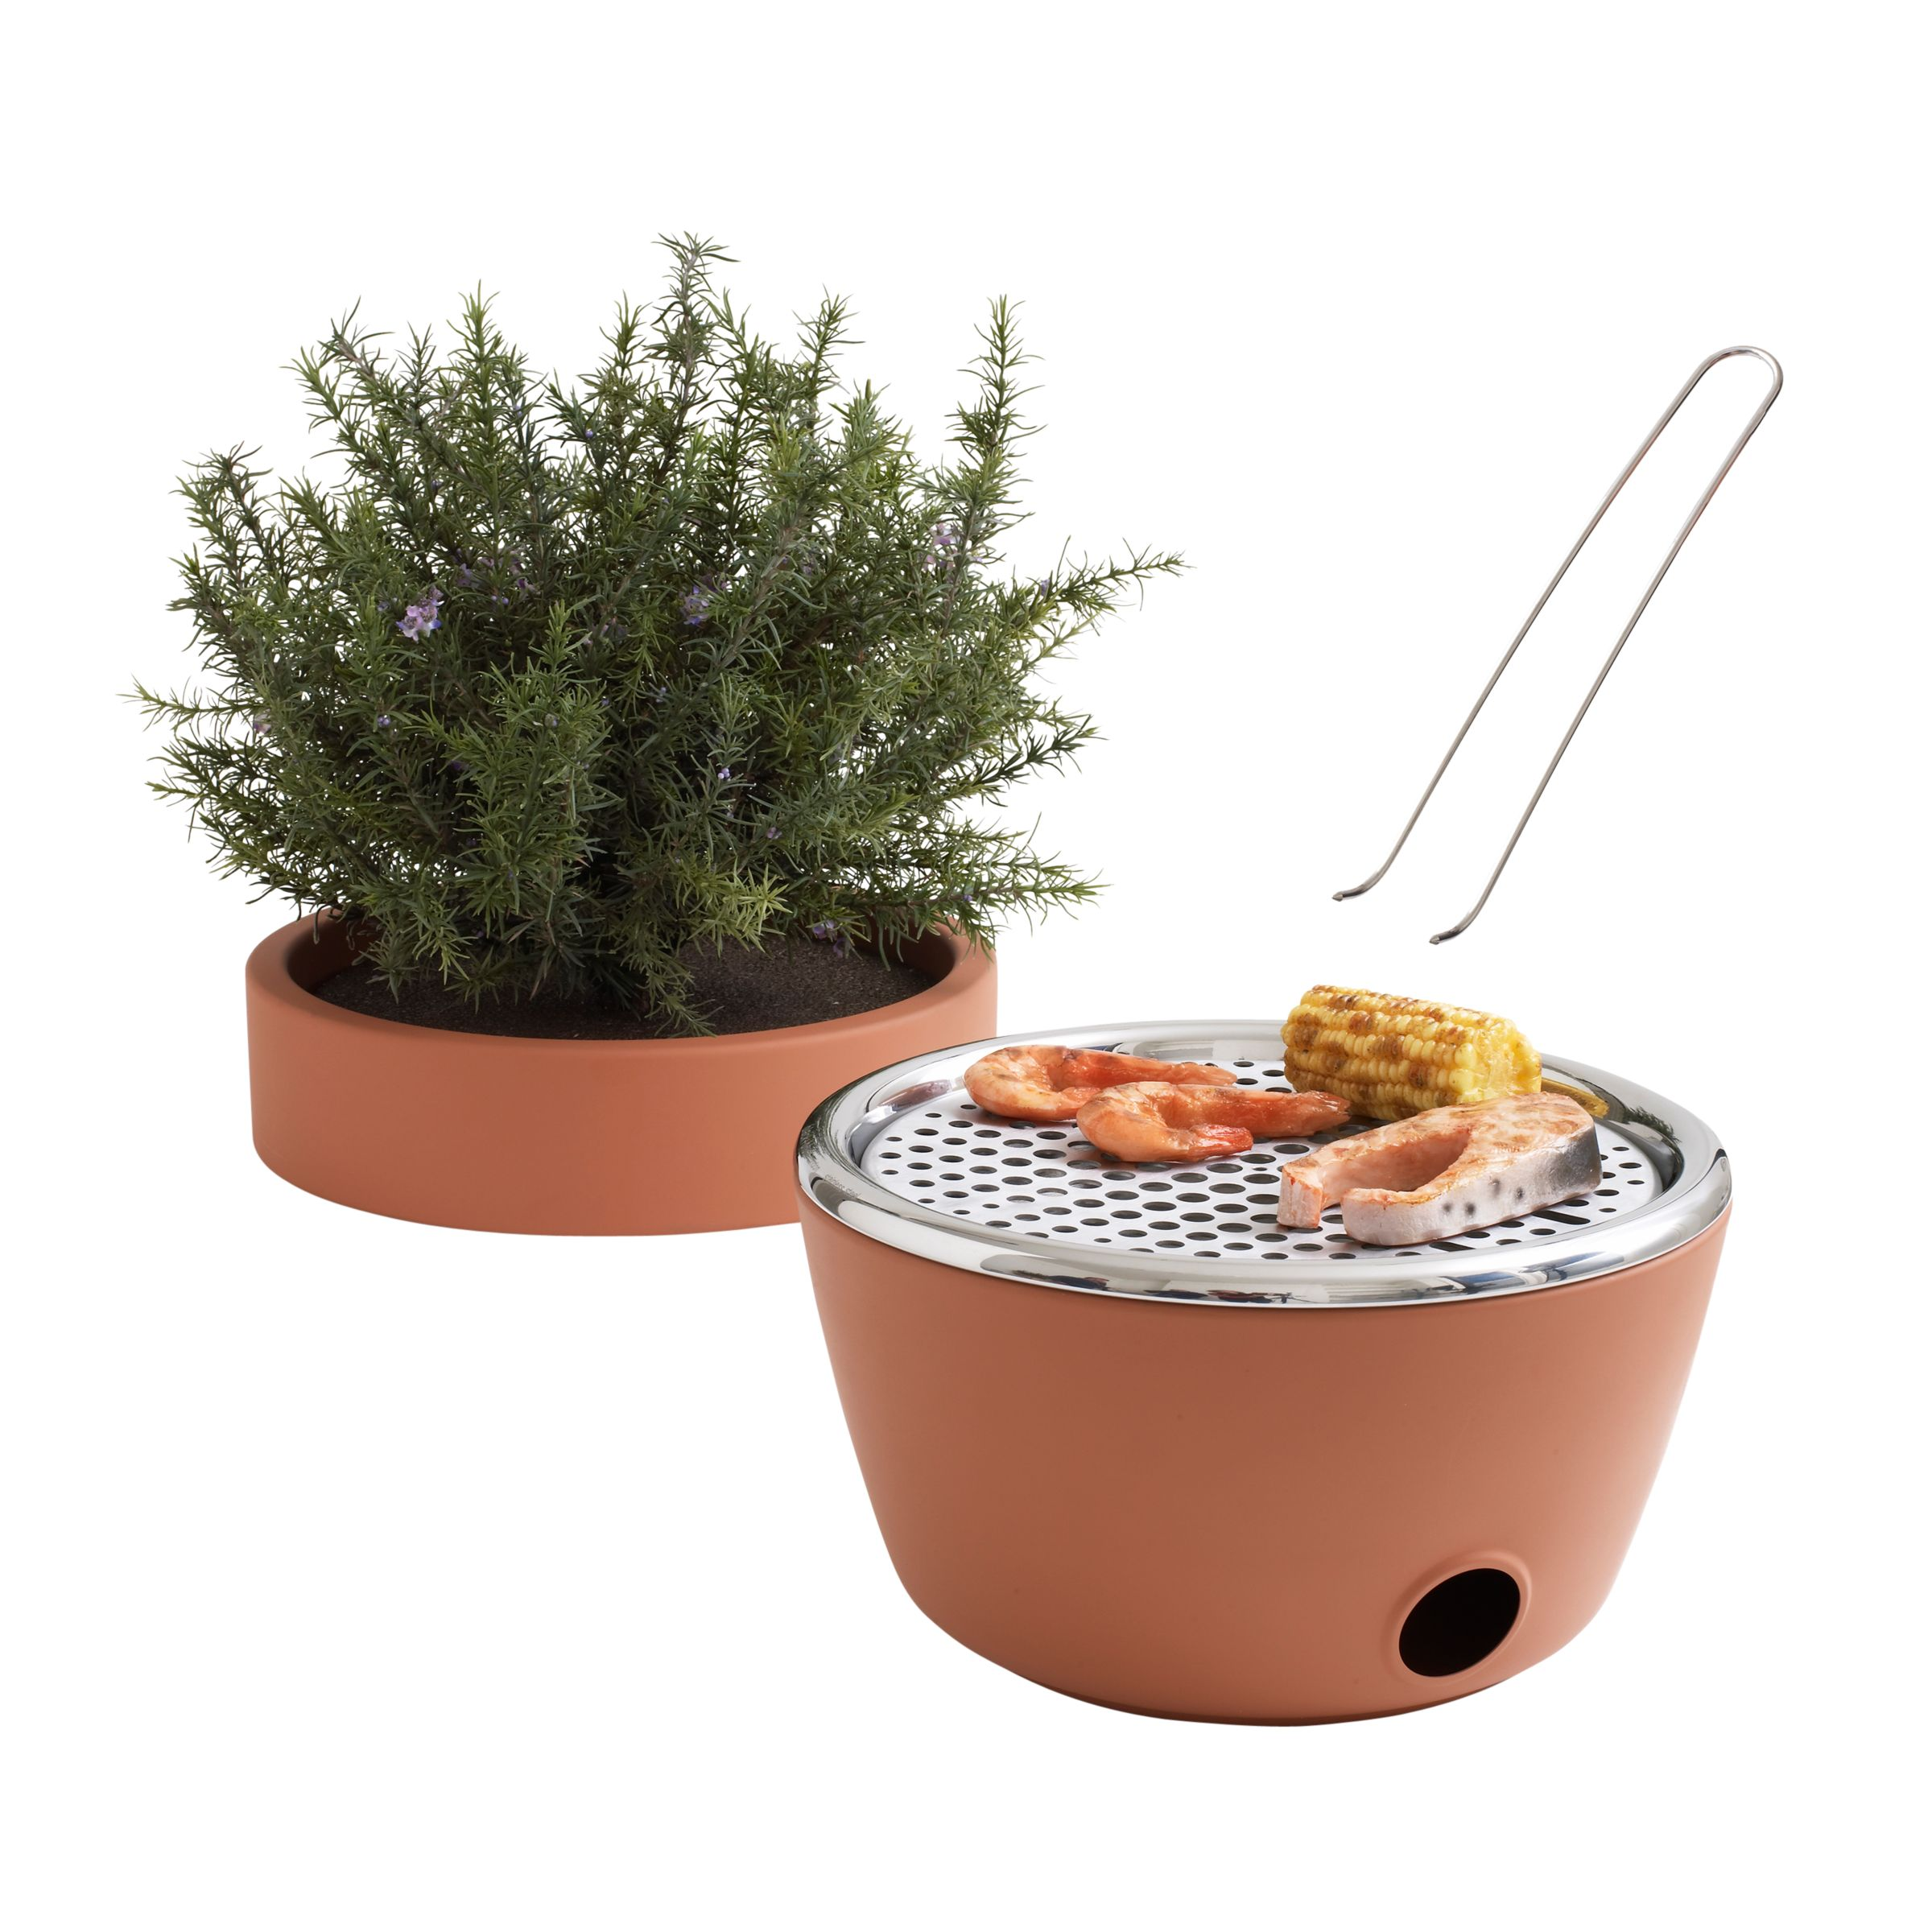 Black + Blum Barbecue and Herb Hot Pot